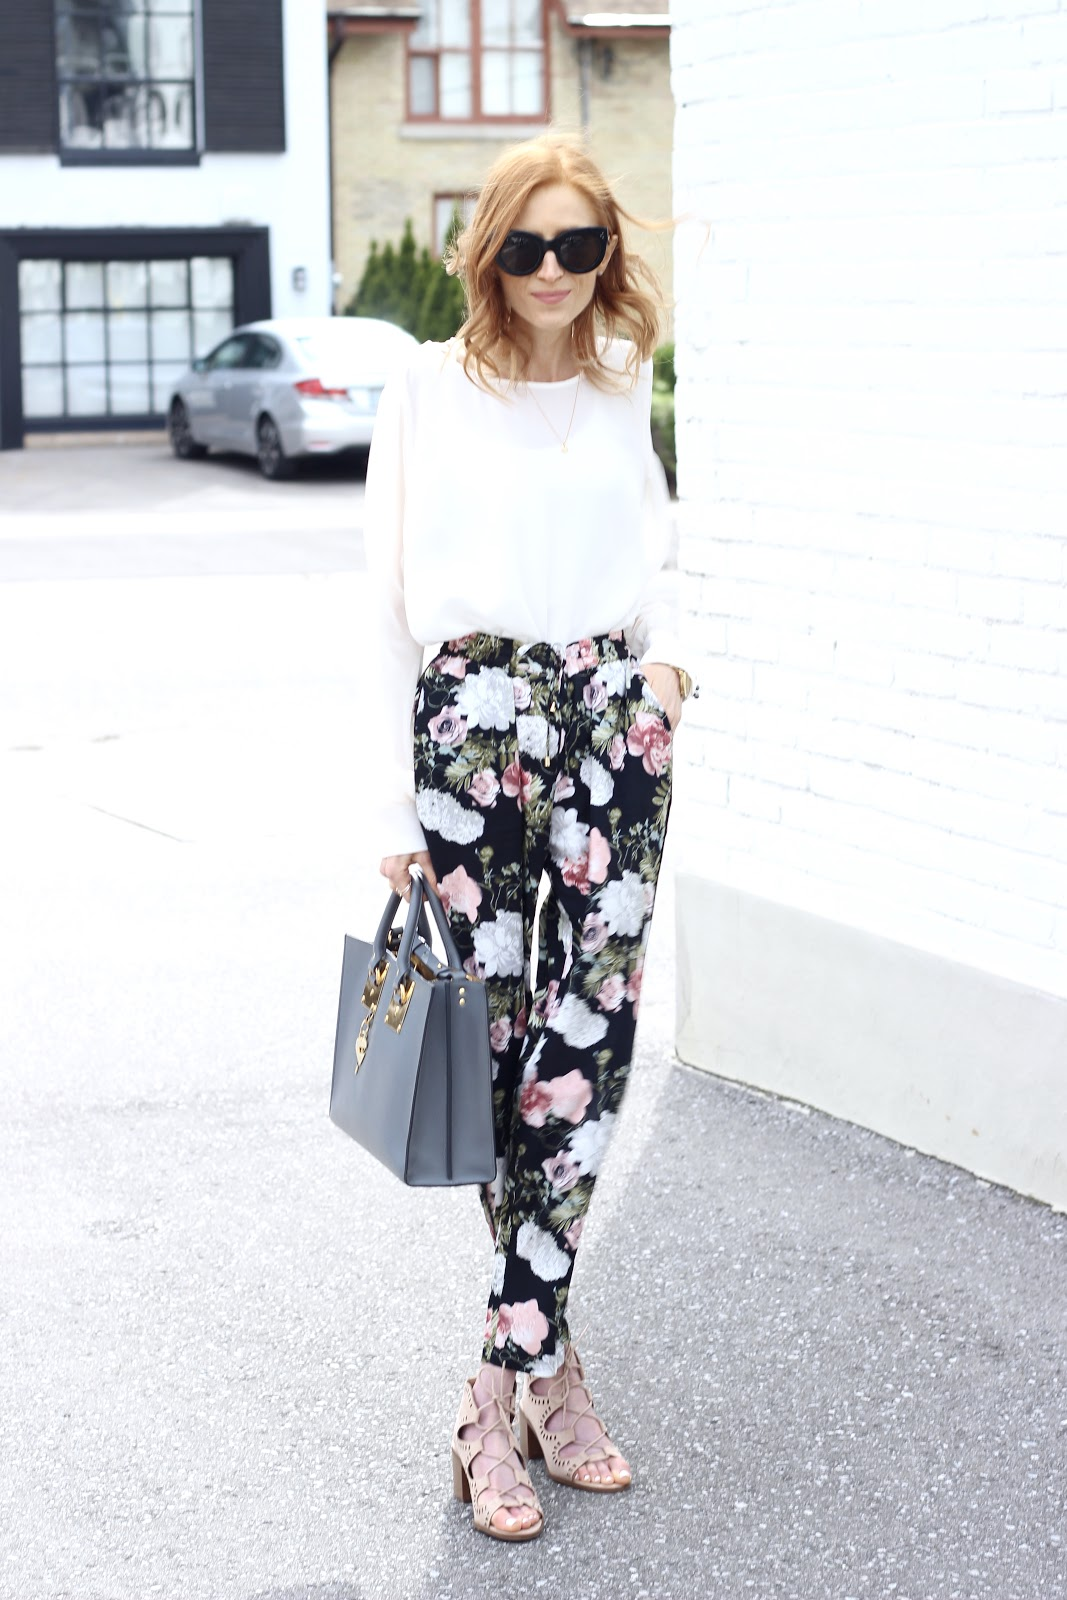 Vero Moda floral trouser, RW & CO white blouse, Mossino gladiator sandal, Sophie Hulme tote, Celine Caty Sunglasses, Spring style